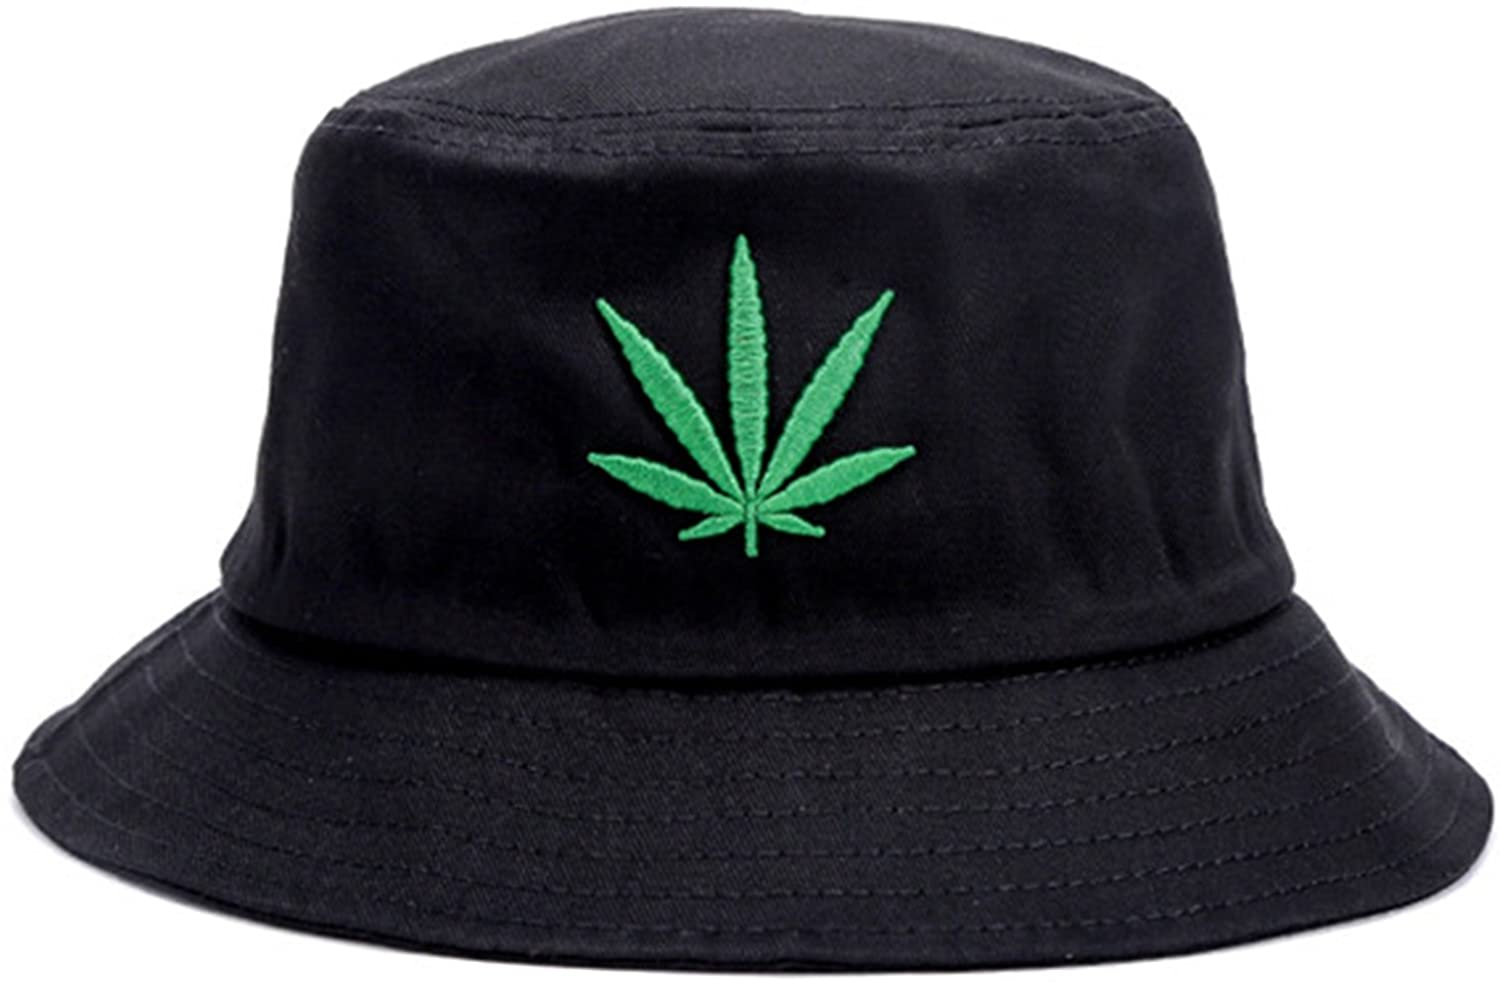 Cotton Bucket Hat Cap with Windproof Rope Foldable Snapback Men Women Camo and Solid